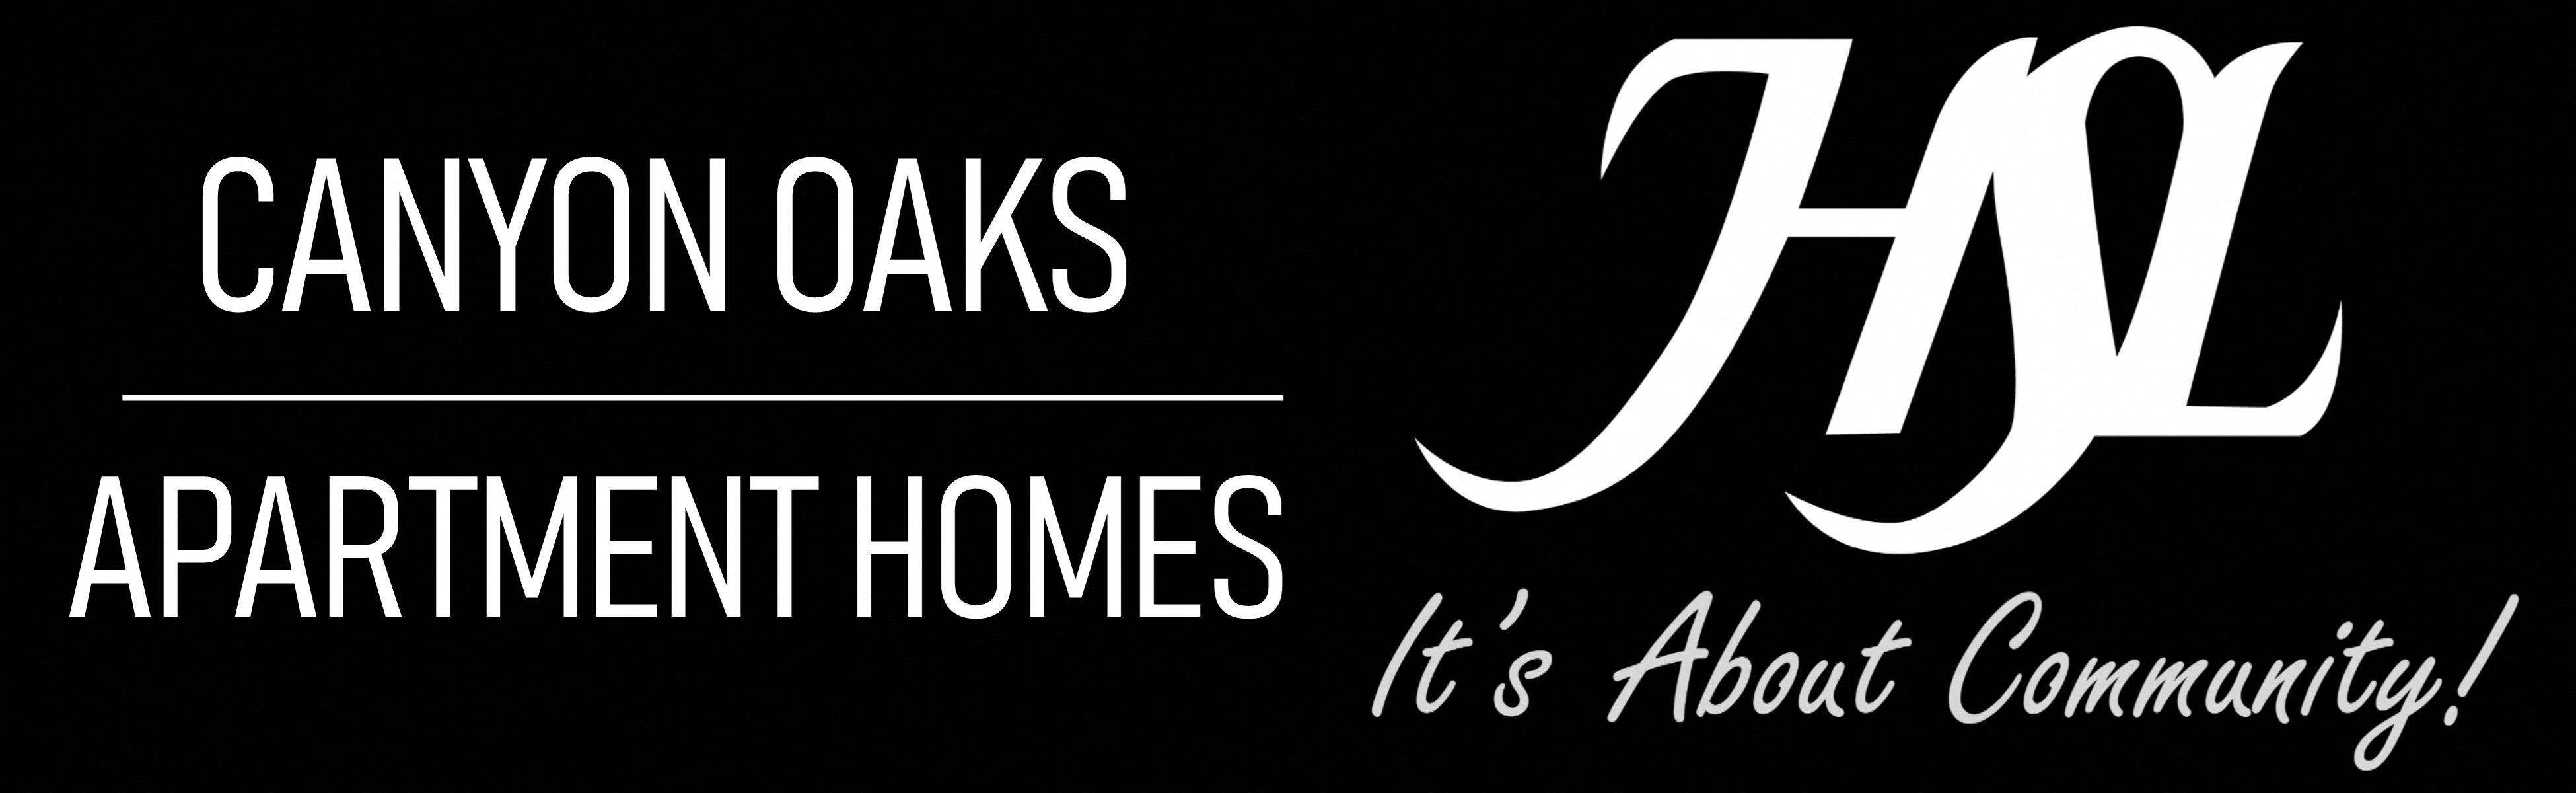 Canyon Oaks Apartment Homes Logo